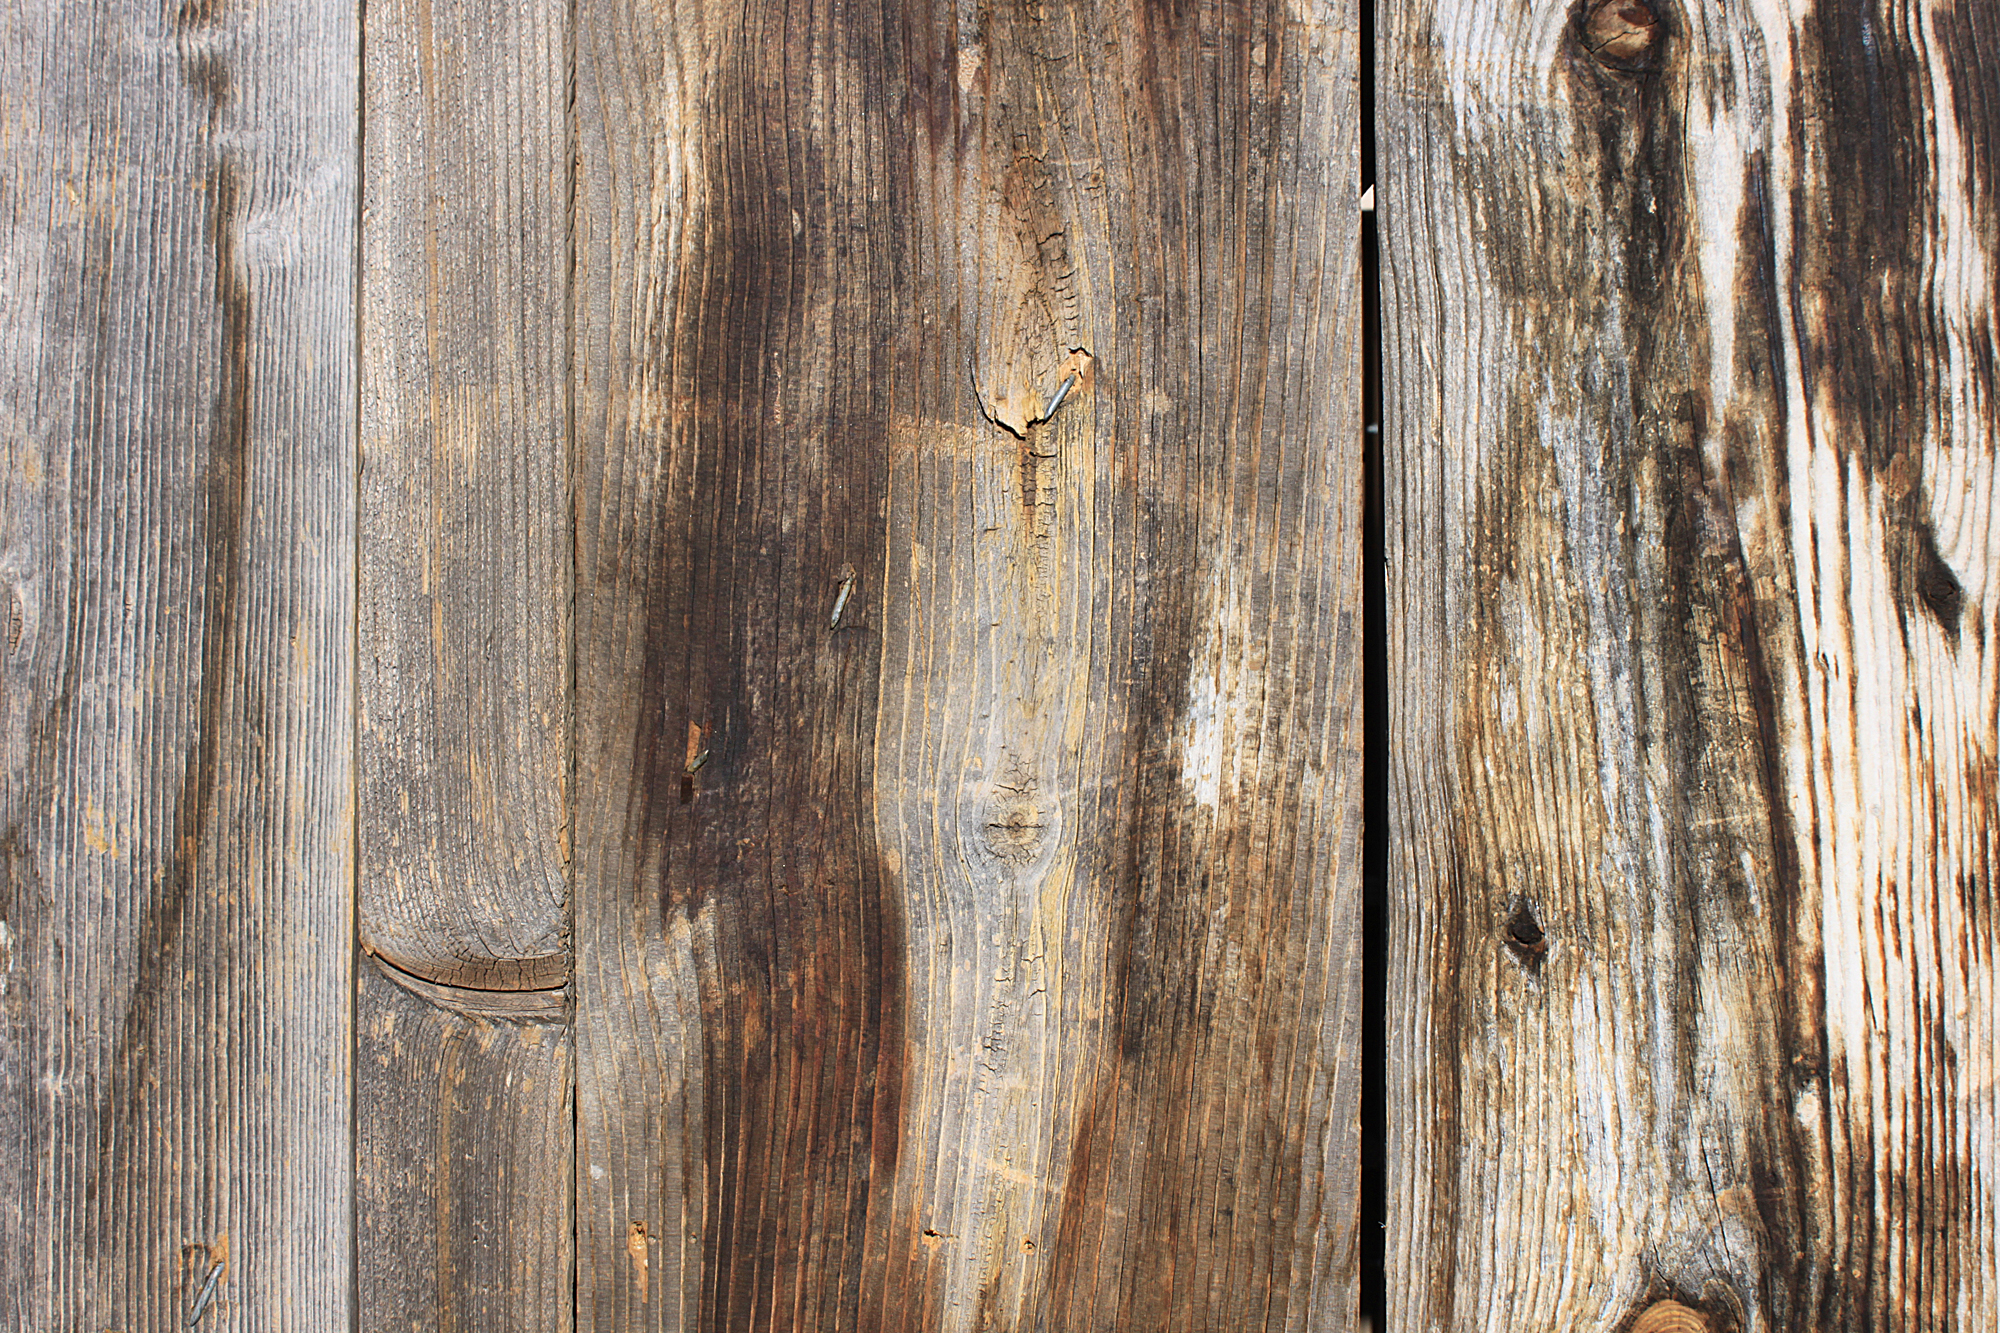 Rustic Wooden Background With Stains Stock Image Liligraphie Pictures 2000x1333